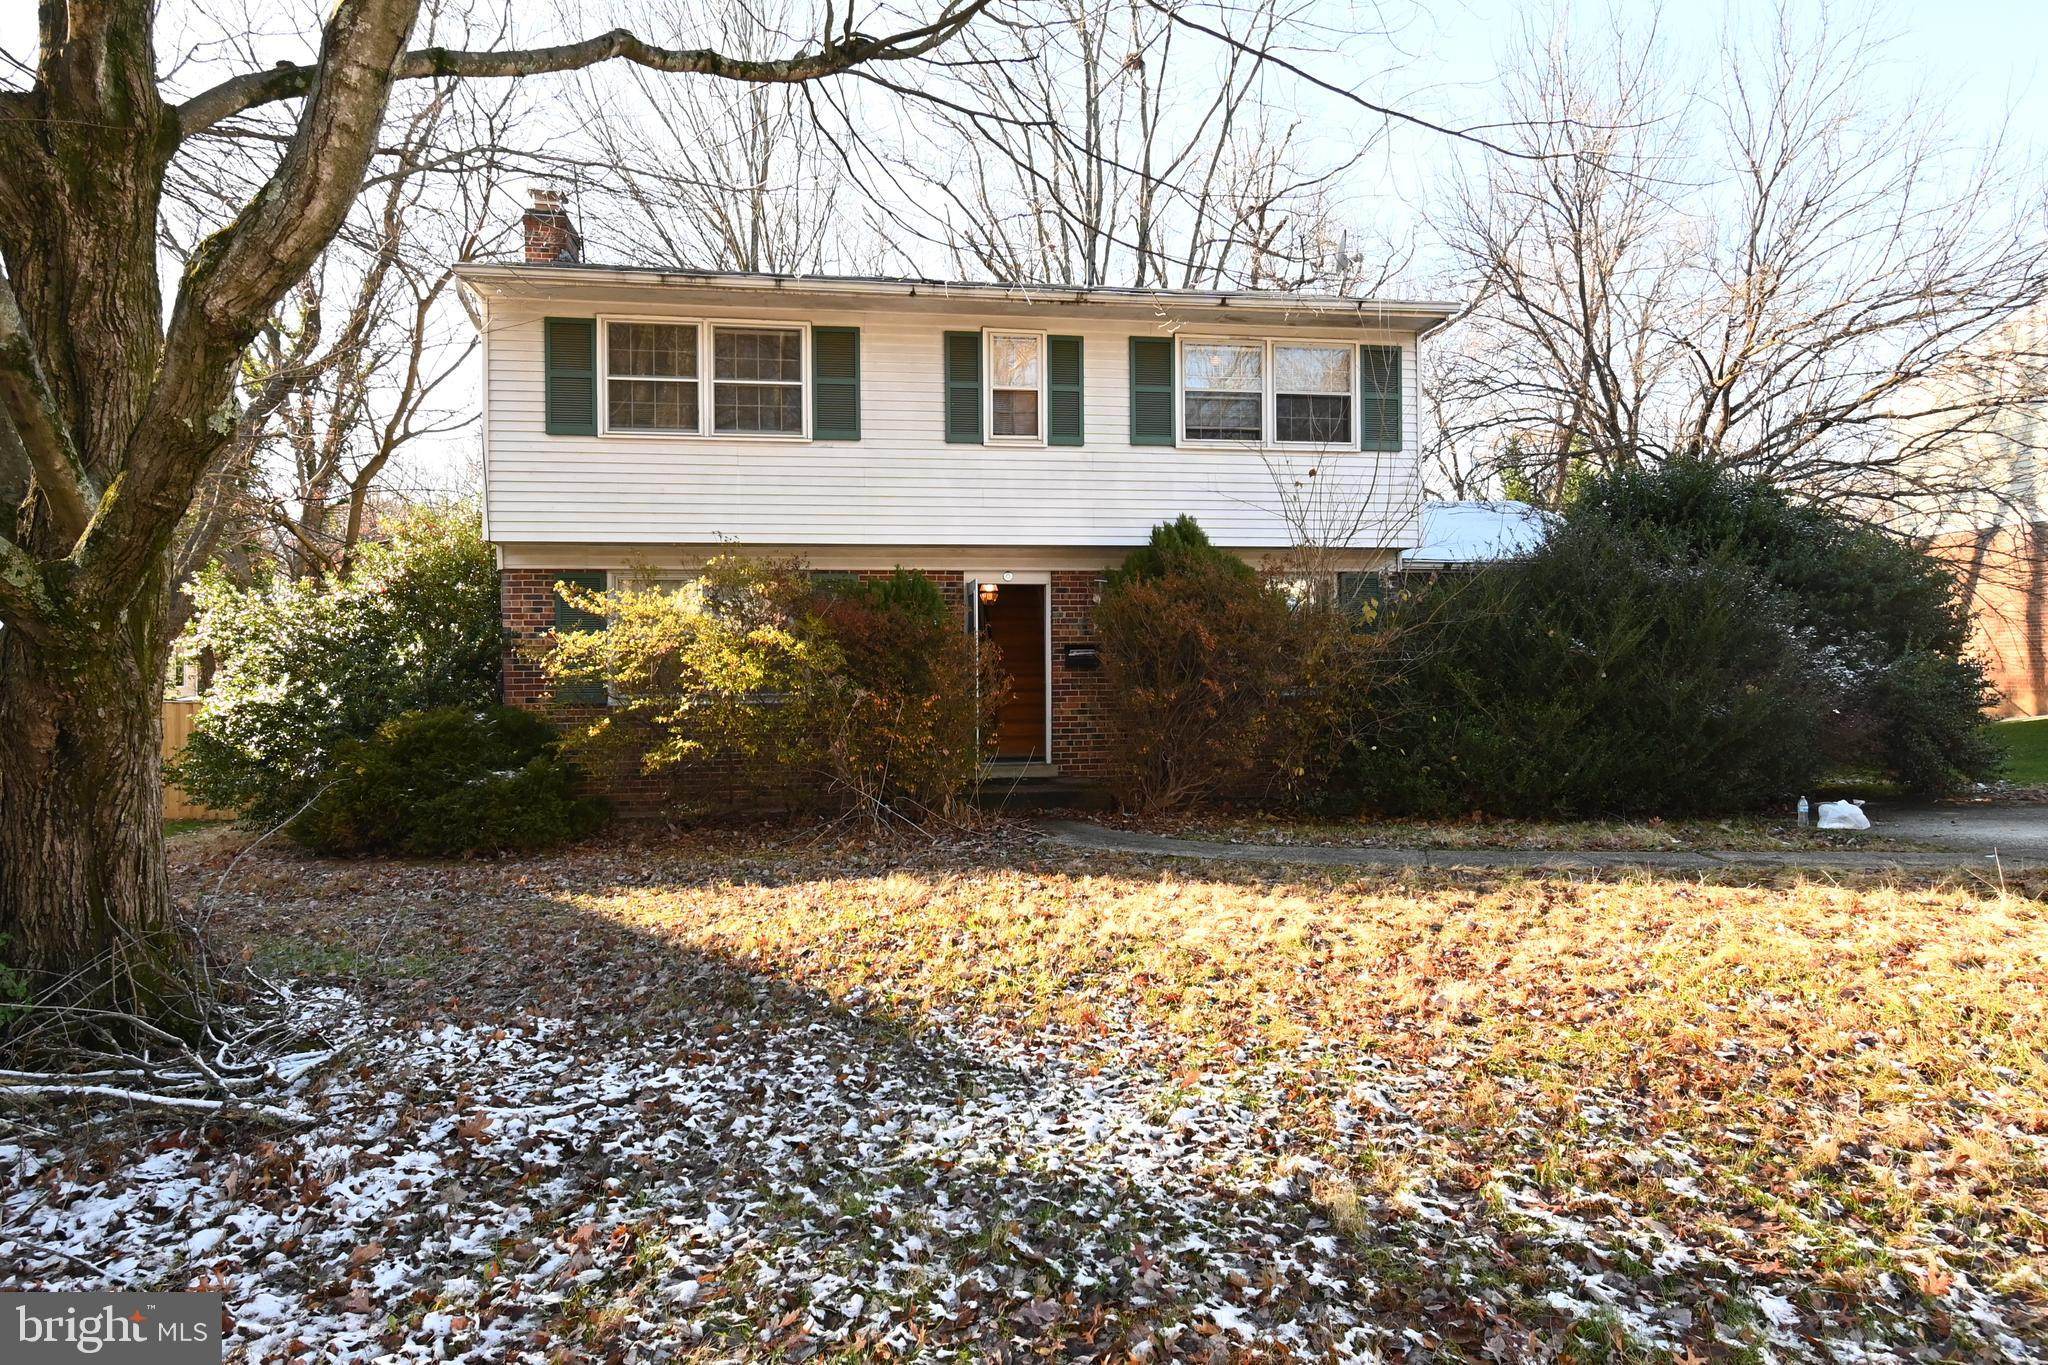 Owner said Sold AS-IS so Priced 100K+ Below Market.  House needs work but has a lot of potential.  I